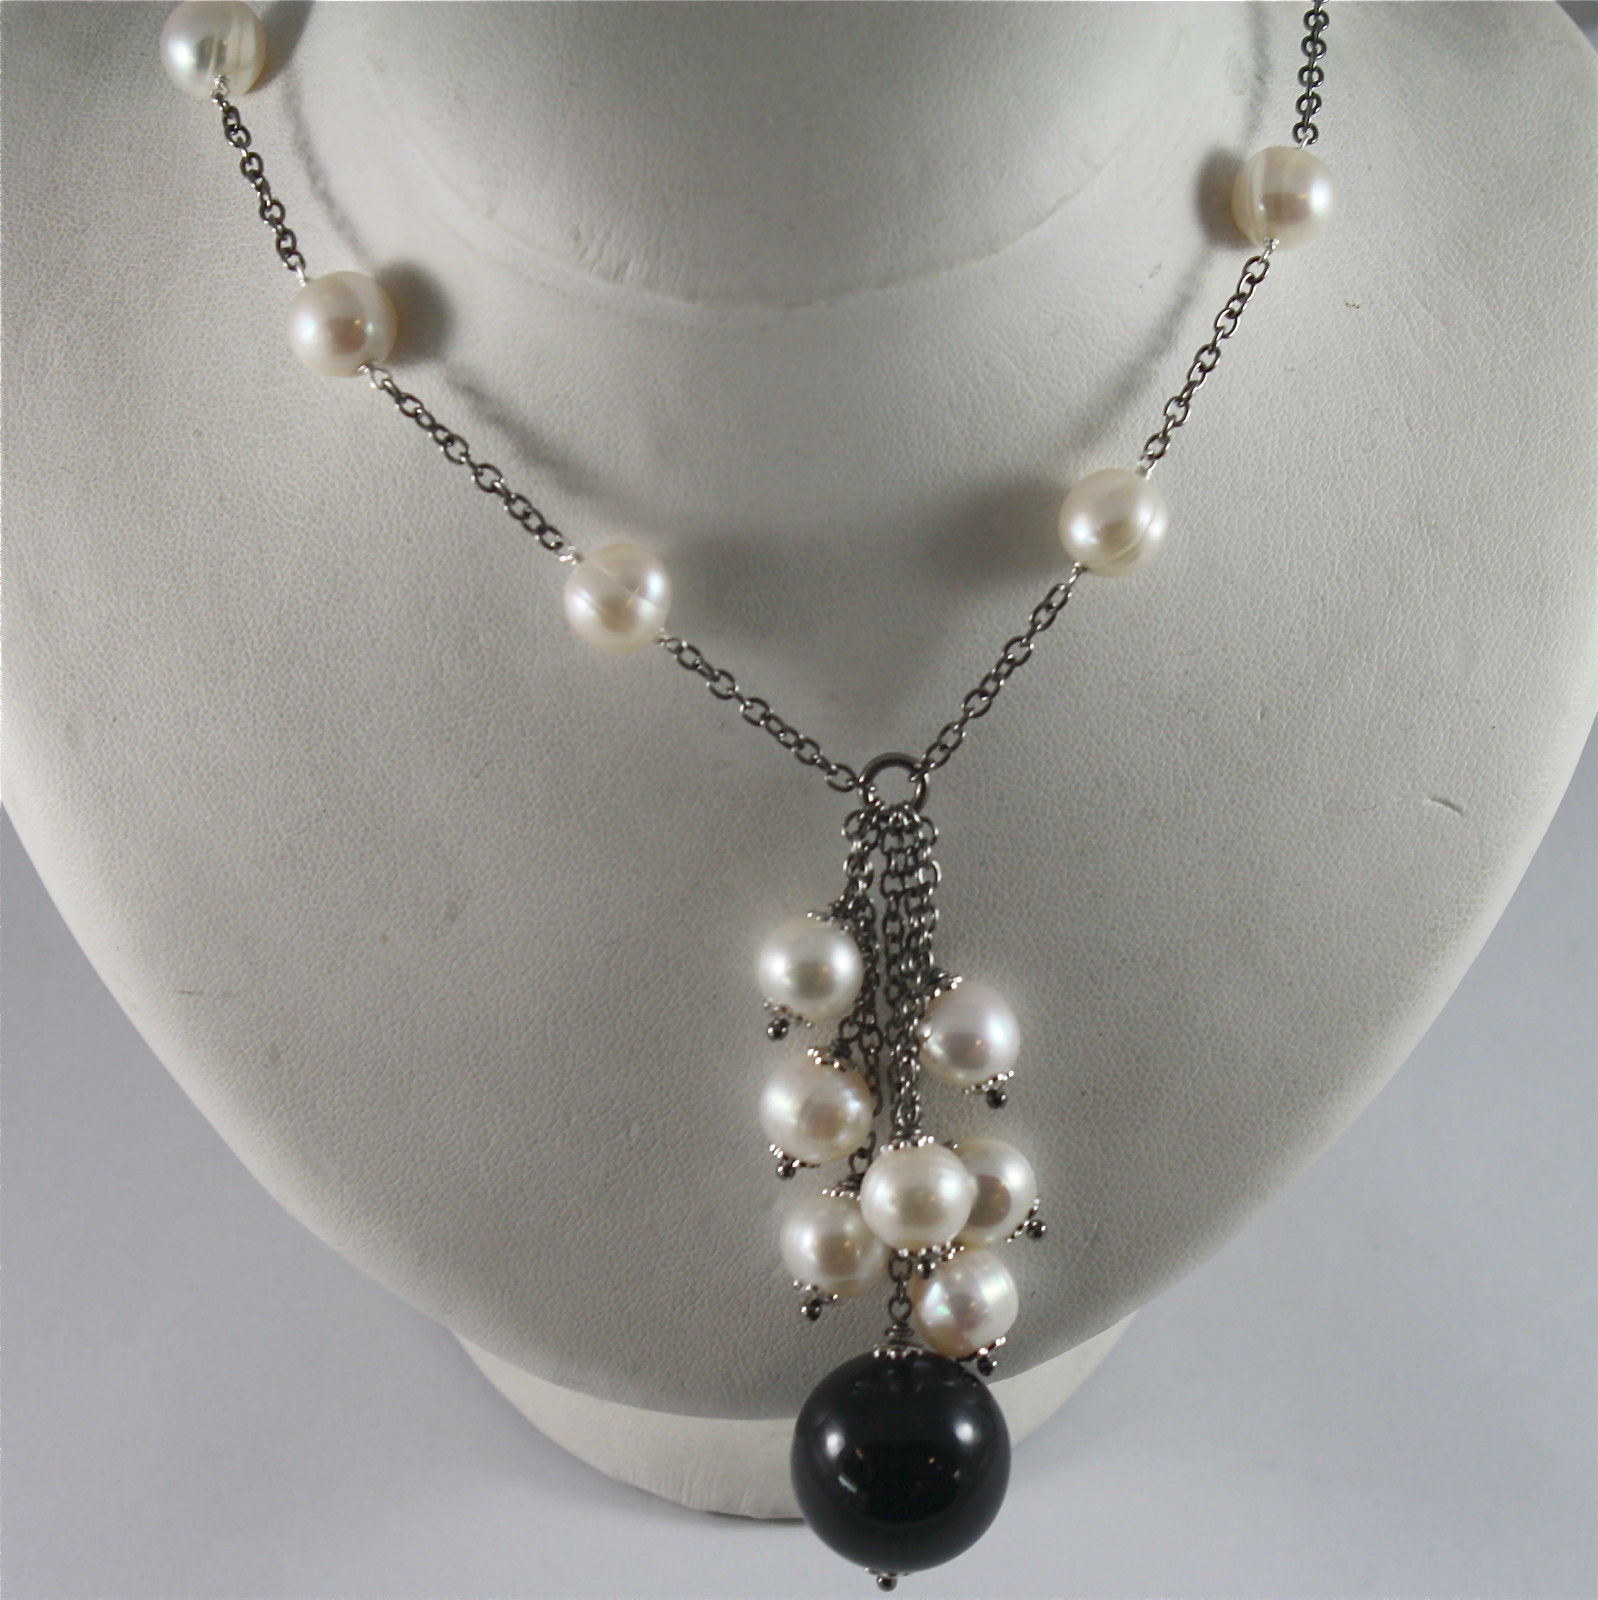 .925 BURNISHED SILVER NECKLACE WITH WHITE FW PEARLS AND BLACK ONYX 17.72 INCH